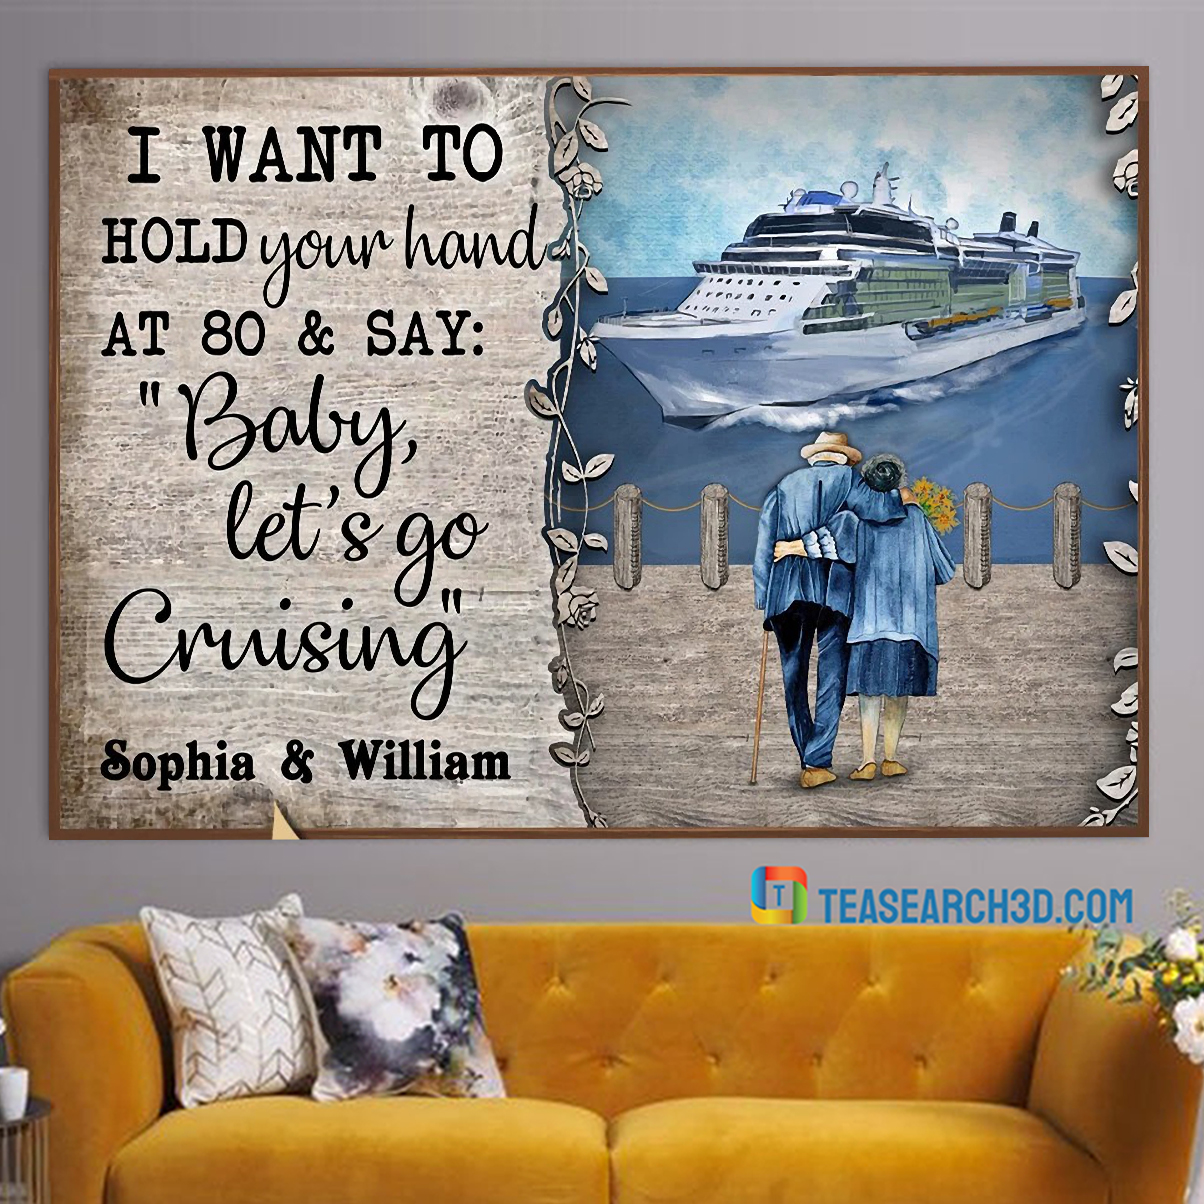 Personalized custom name cruising harbor baby let's go poster A3